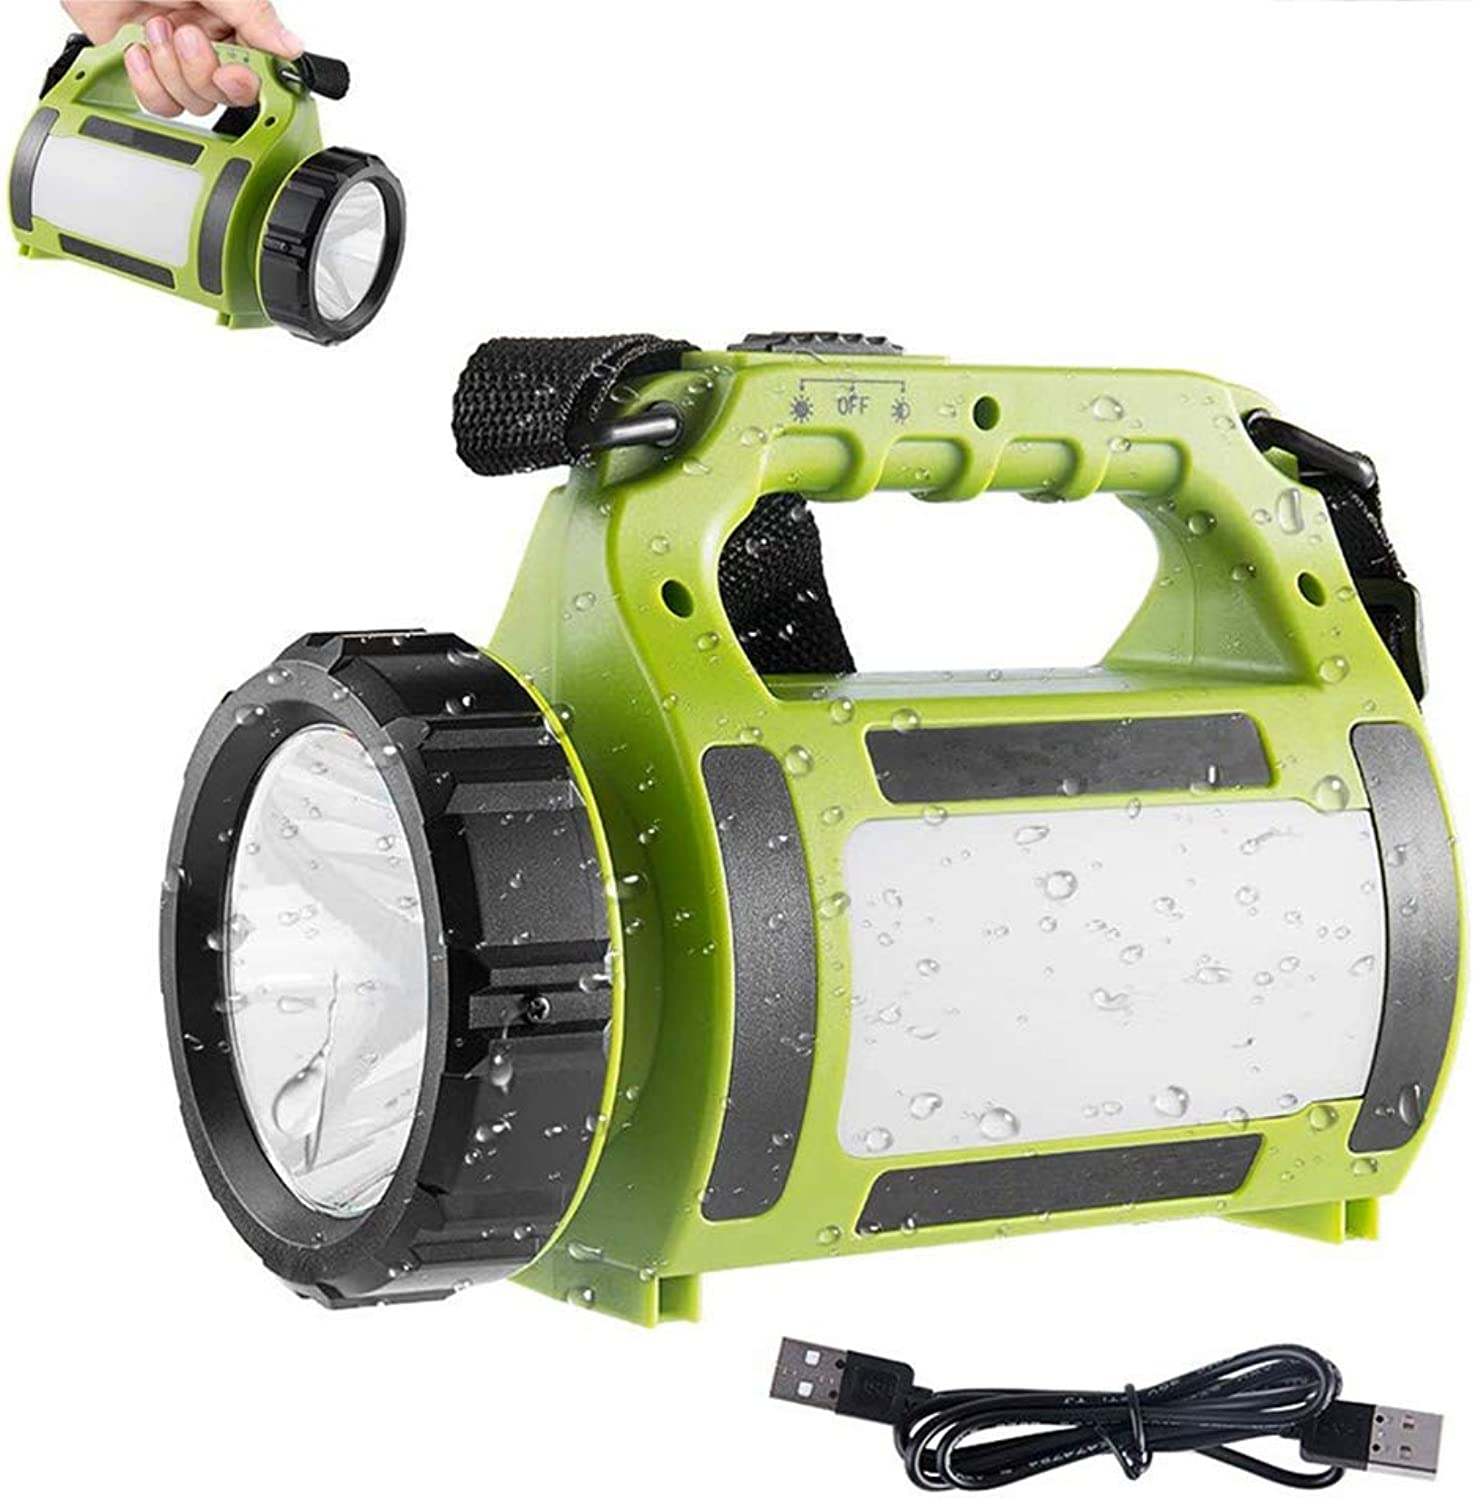 LED Rechargeable Torch Lantern Spotlight Super Bright Multi-Functional Camping Light Waterproof Portable LED Searchlight, 2000mAh Battery